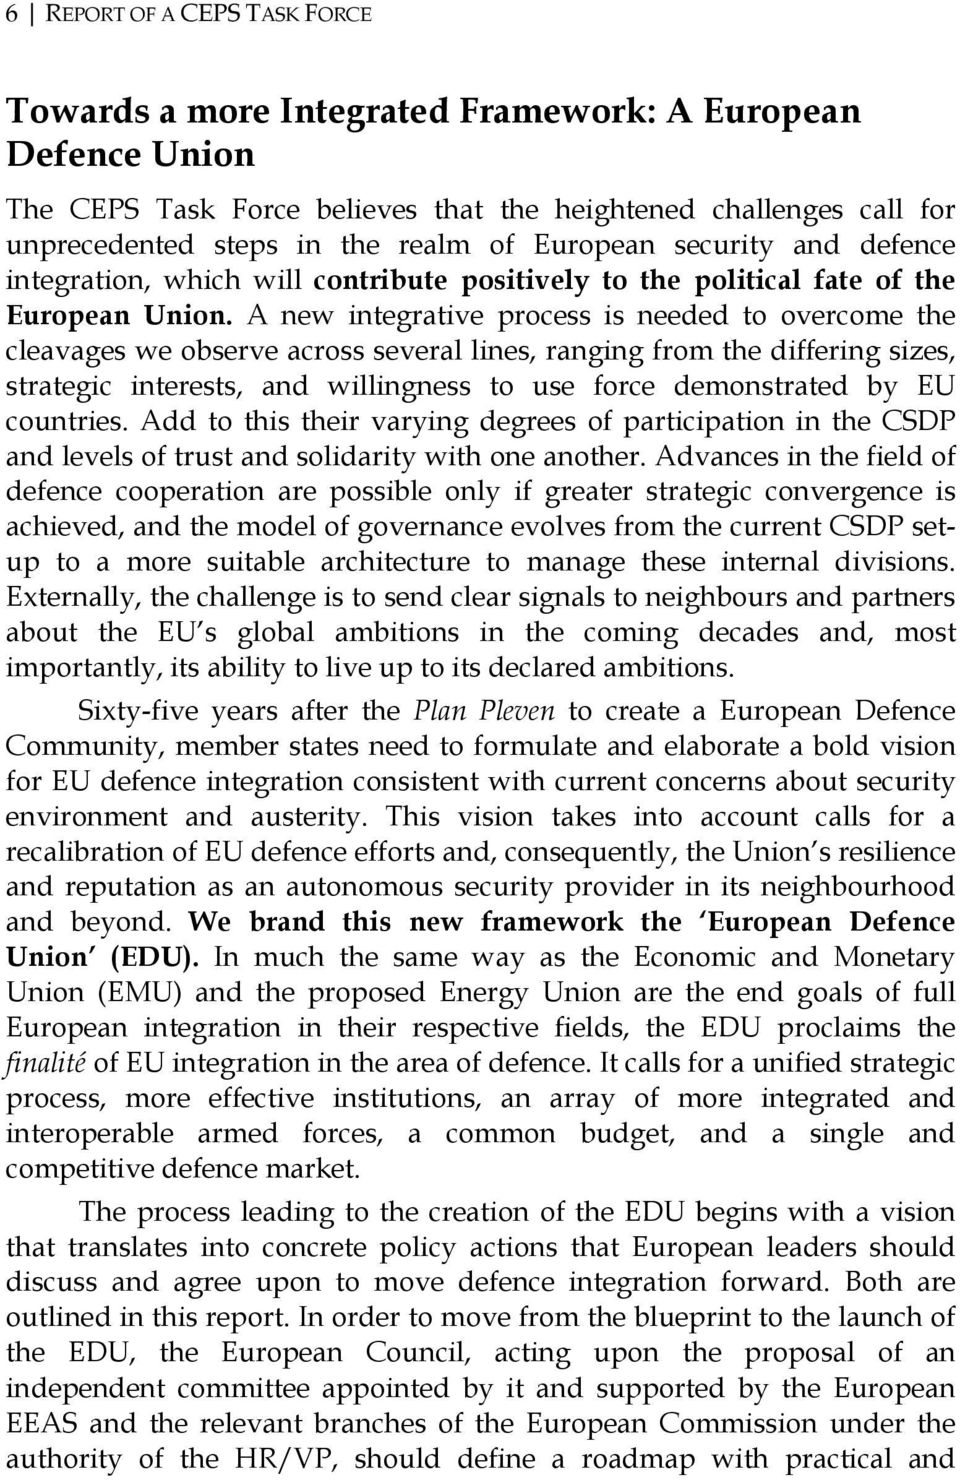 A new integrative process is needed to overcome the cleavages we observe across several lines, ranging from the differing sizes, strategic interests, and willingness to use force demonstrated by EU